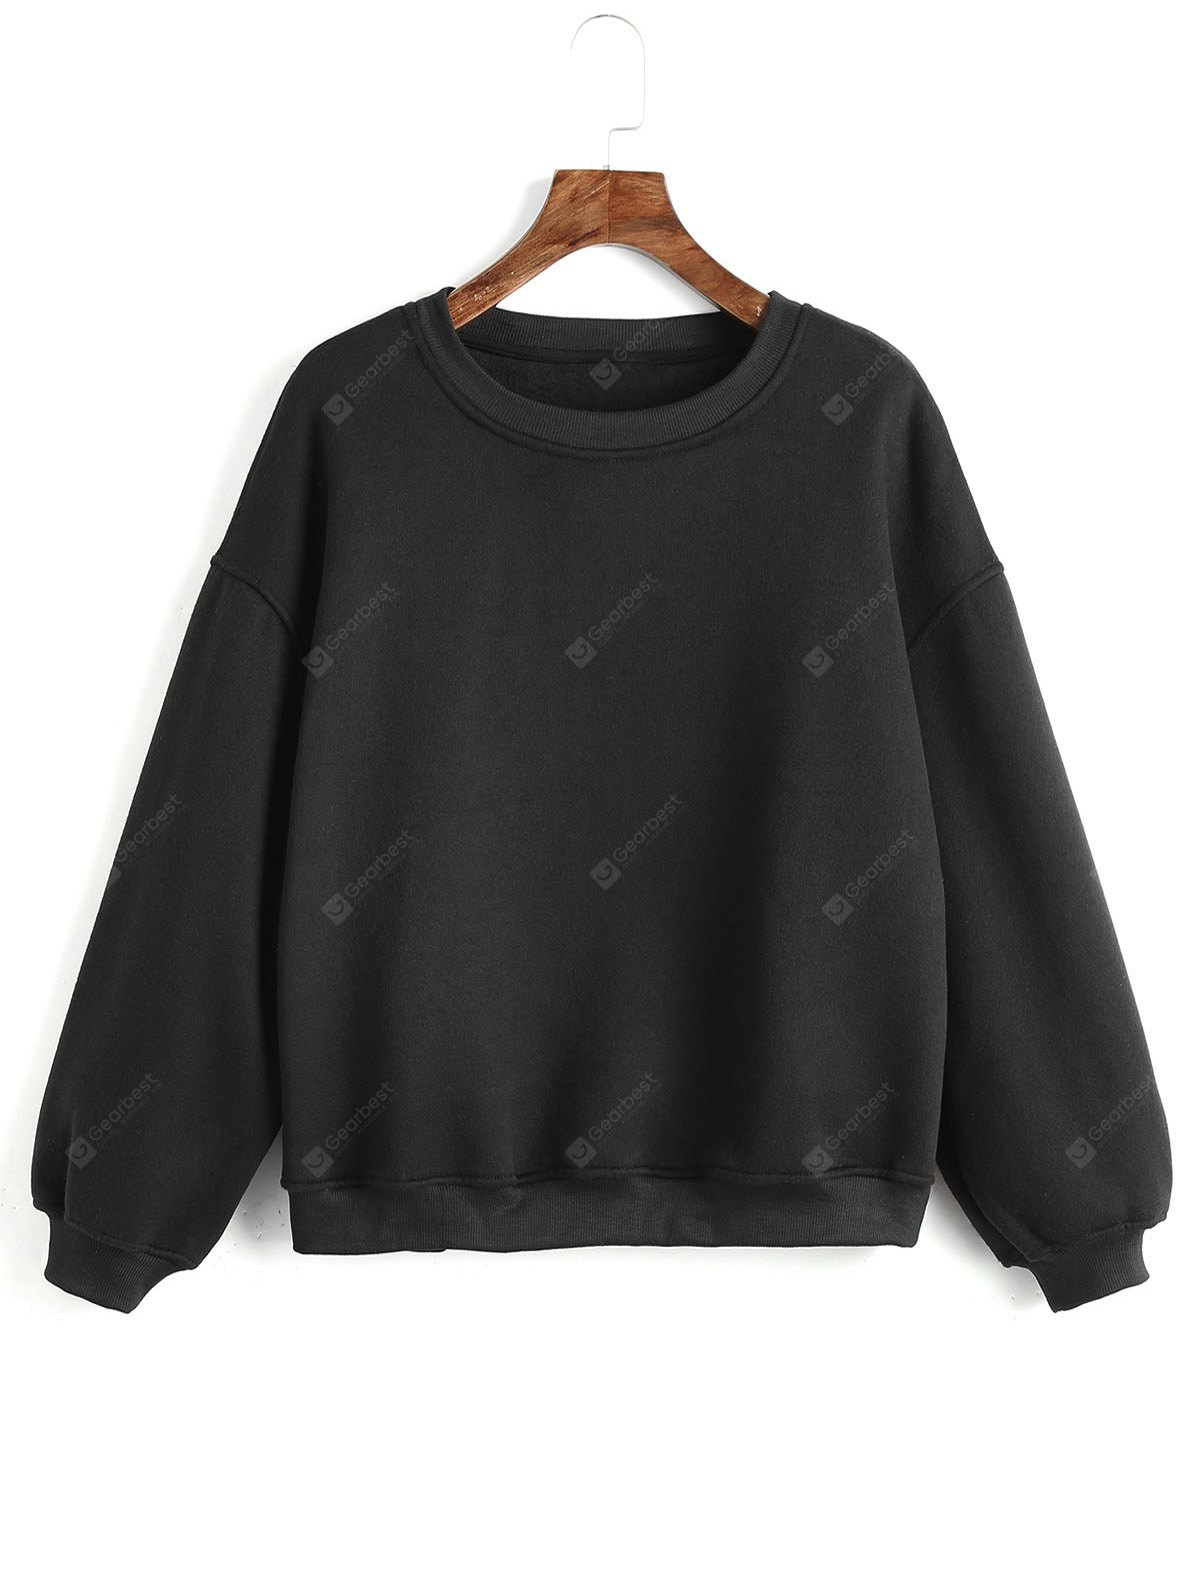 Ribbons Criss Cross Sweatshirt